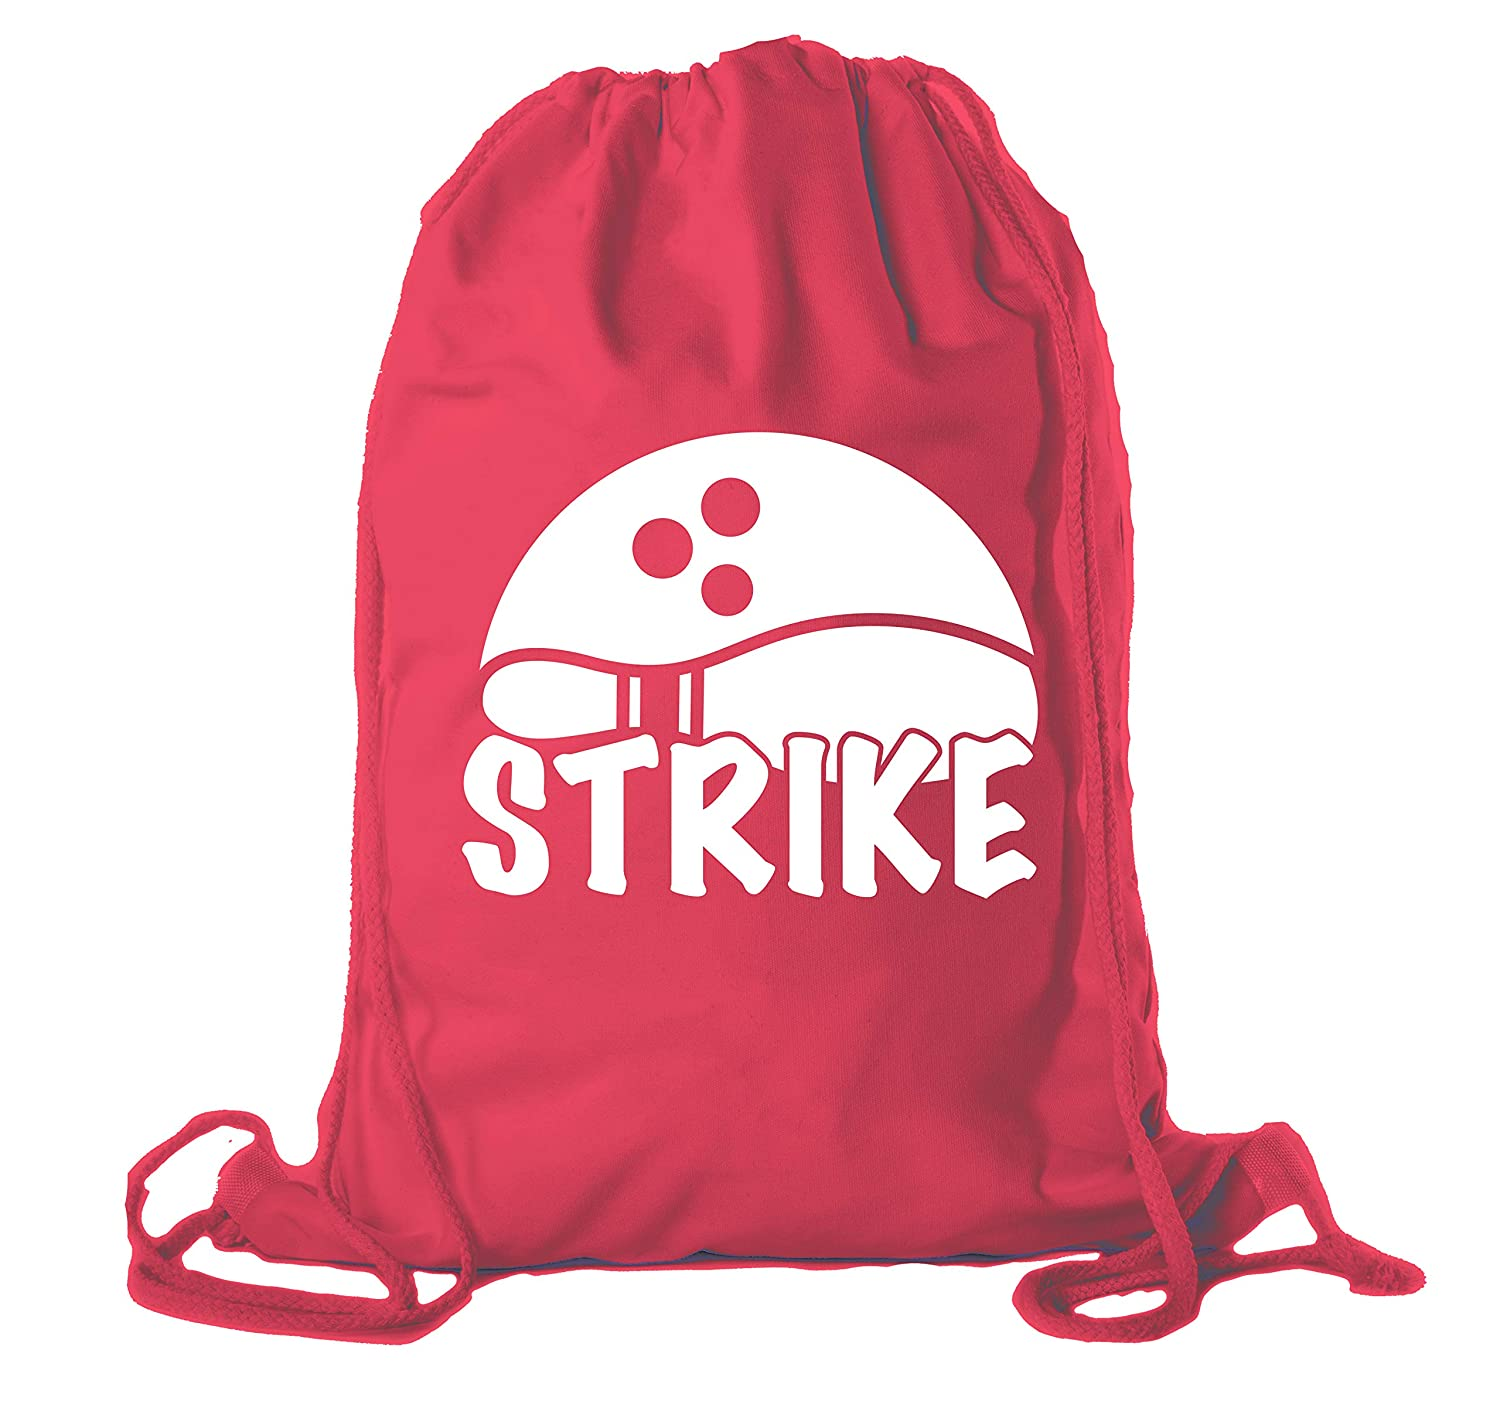 Drawstring Bowling Bag Cotton Bowling Cinch bags for Leagues and Parties!